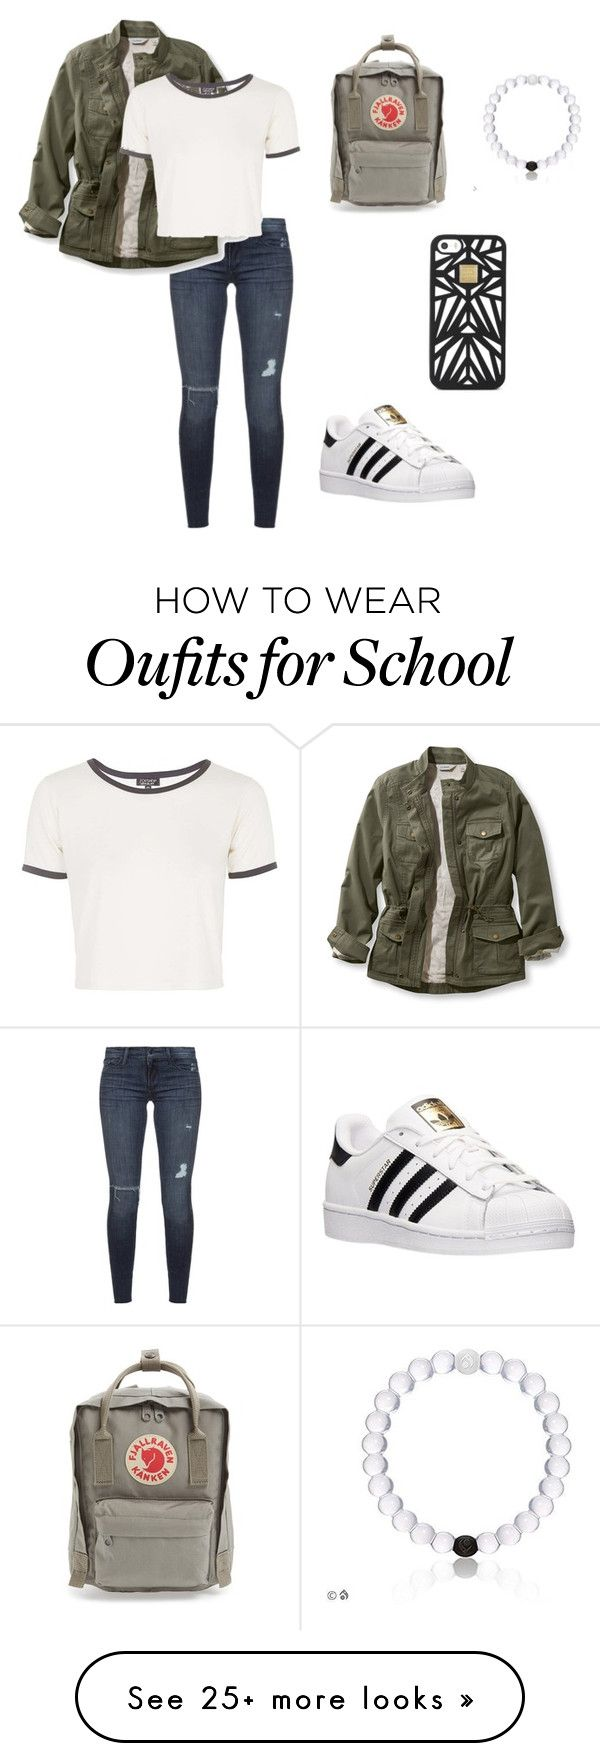 """school casual"" by peotics on Polyvore featuring Black Orchid, L.L.Bean, Topshop, adidas, Fjällräven and Hervé Léger"